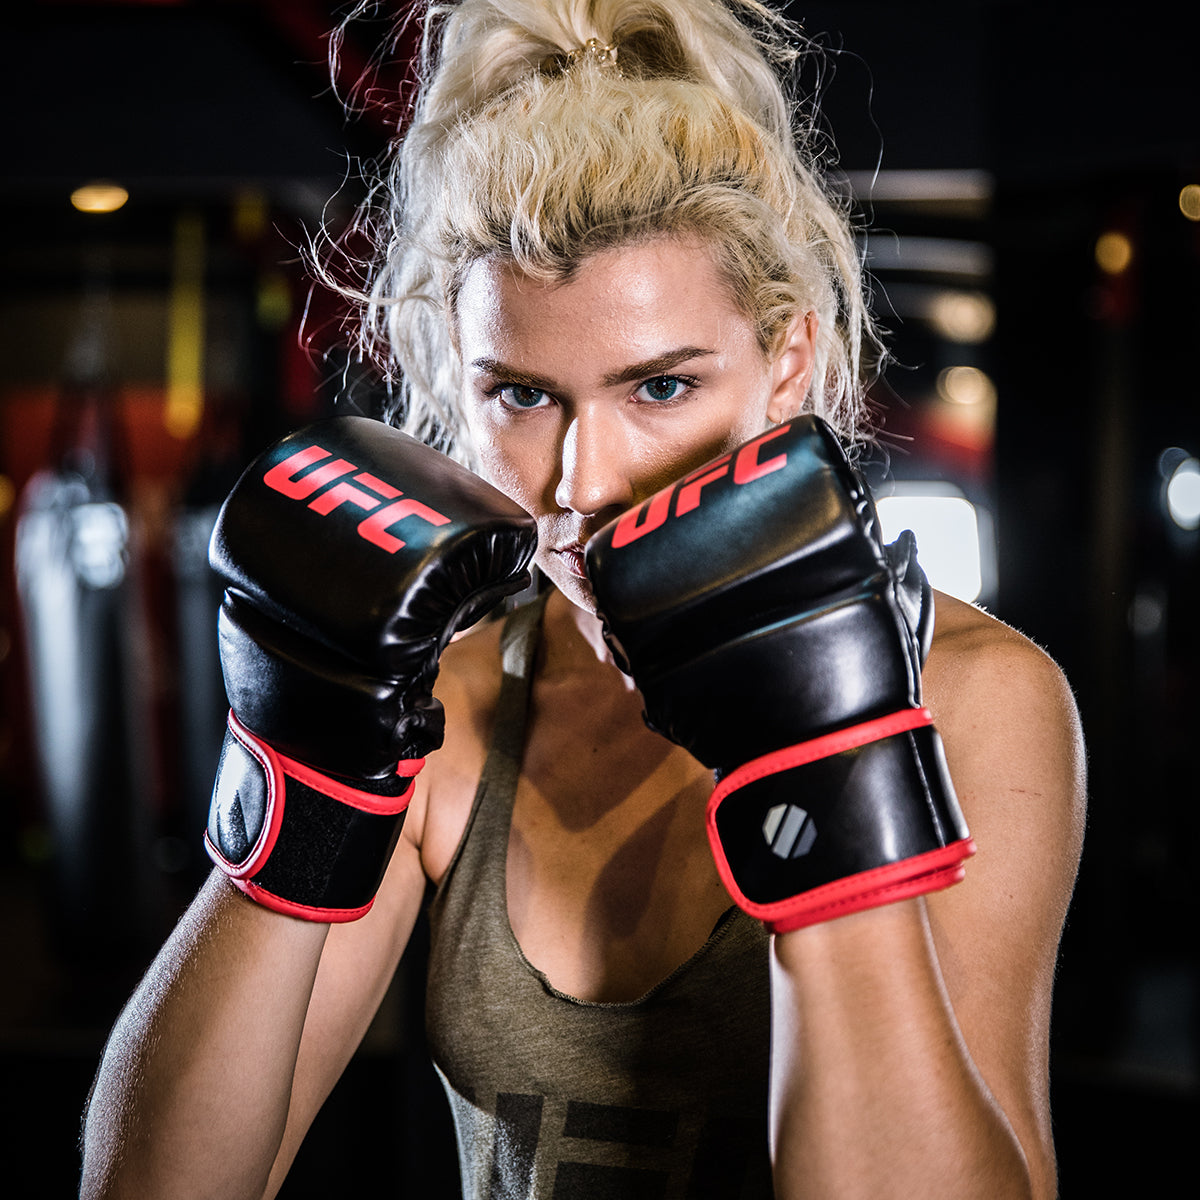 Athlete wearing and holding the gloves in front of her face